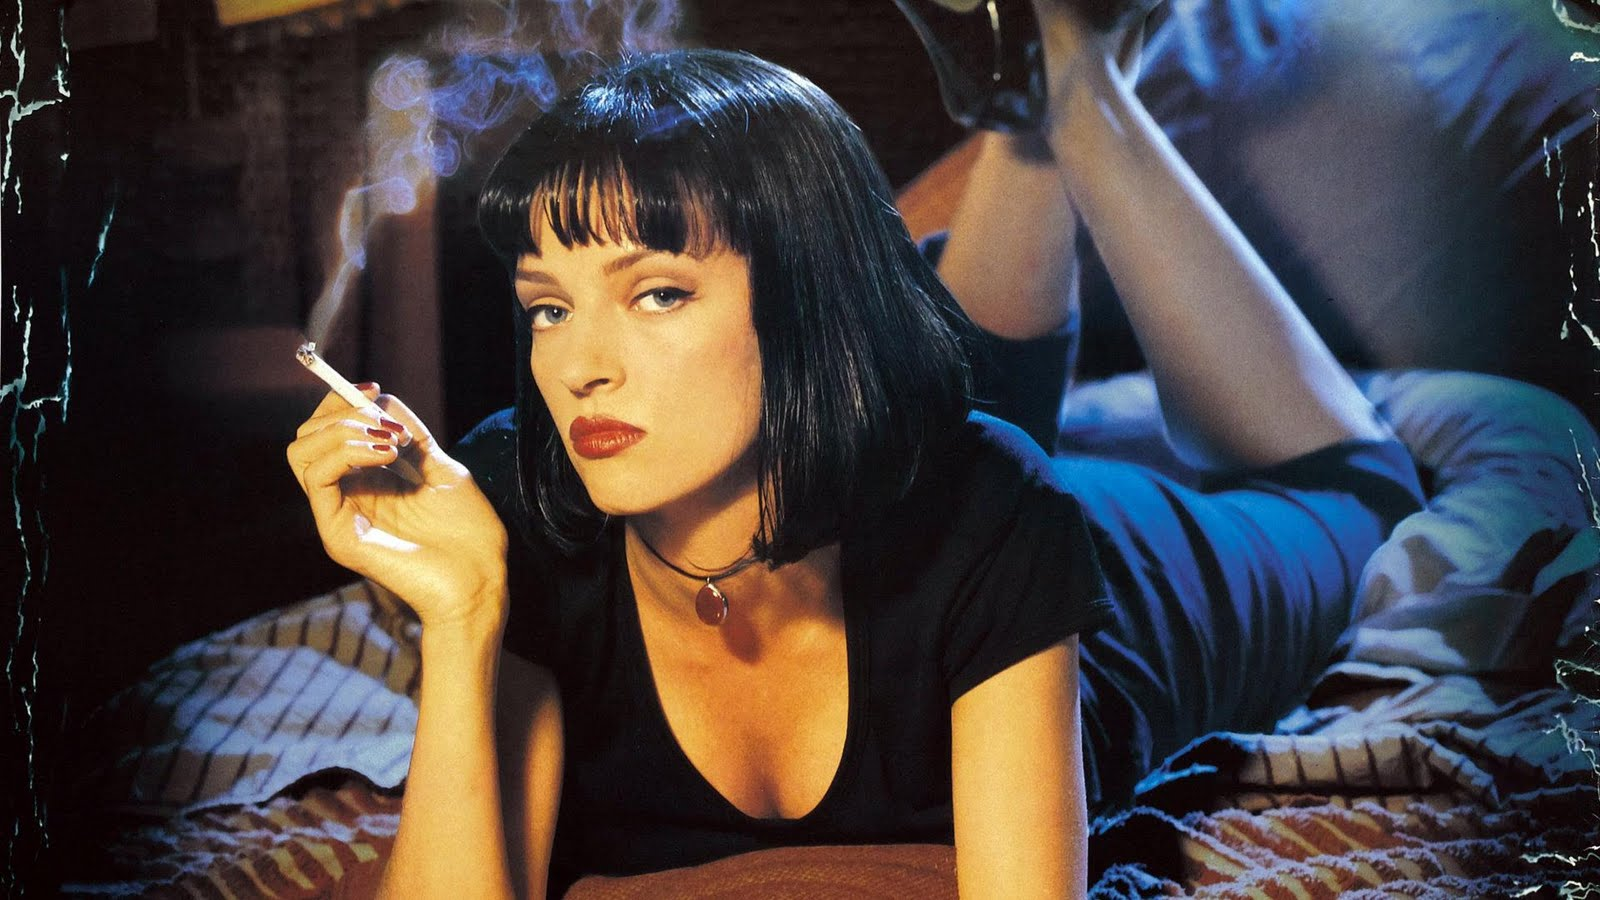 http://4.bp.blogspot.com/-1nhC7hV4iTU/TbbQsyzRQiI/AAAAAAAABPY/JY9JWPPZBqE/s1600/1301235104-uma-thurman-in-pulp-fiction-wallpaper-1920x1080.jpg